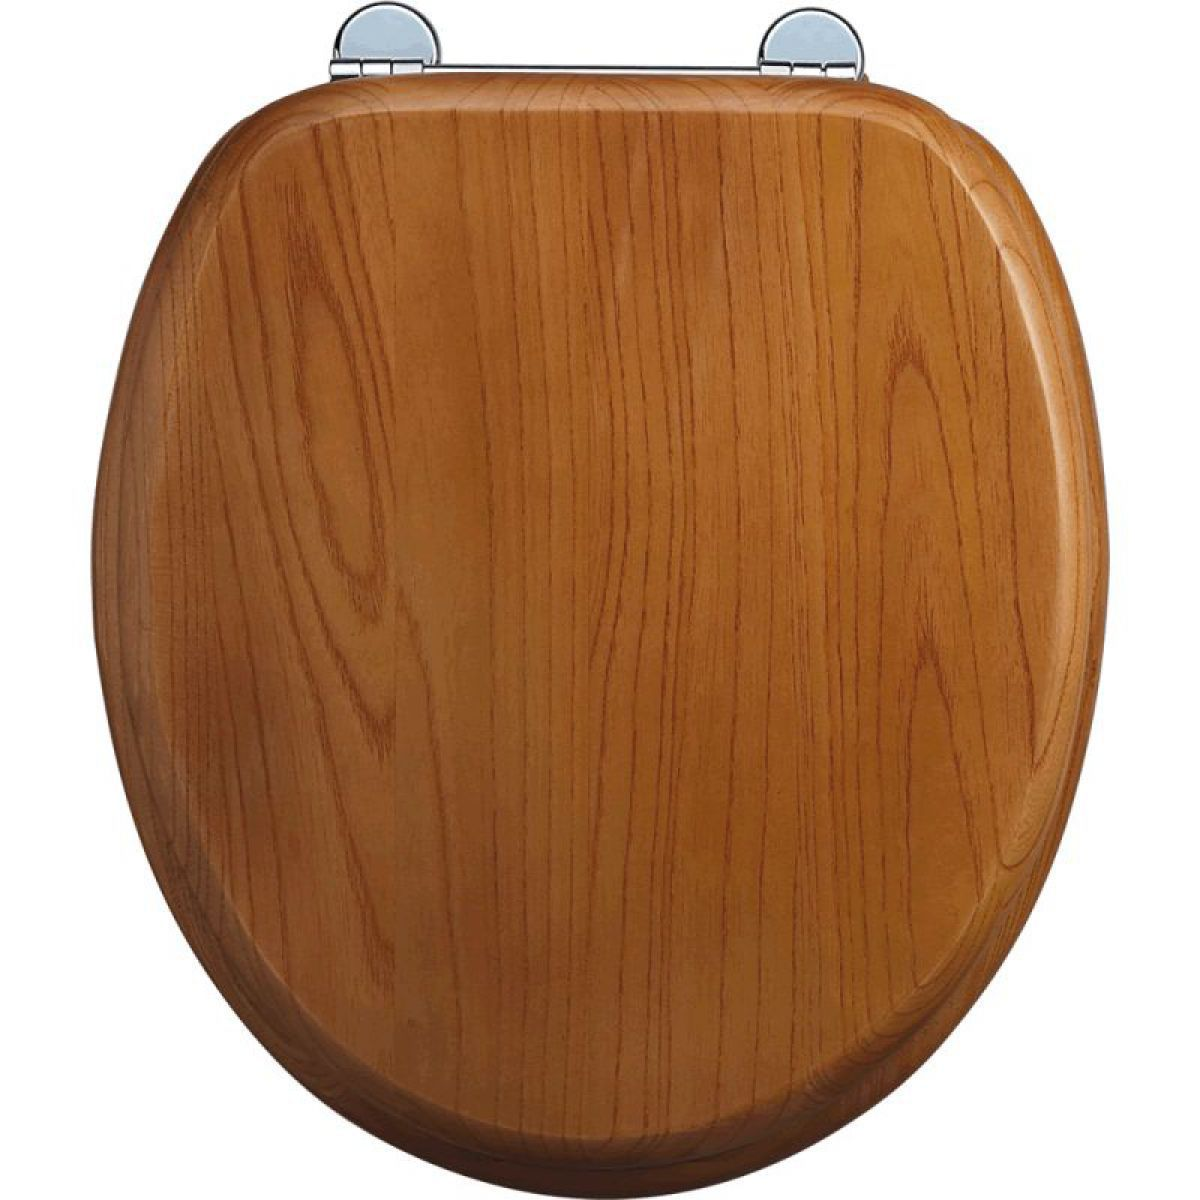 wooden square toilet seat. Burlington Soft Close Toilet Seat and Cover  UK Bathrooms Wooden Traditional soft closing toilet